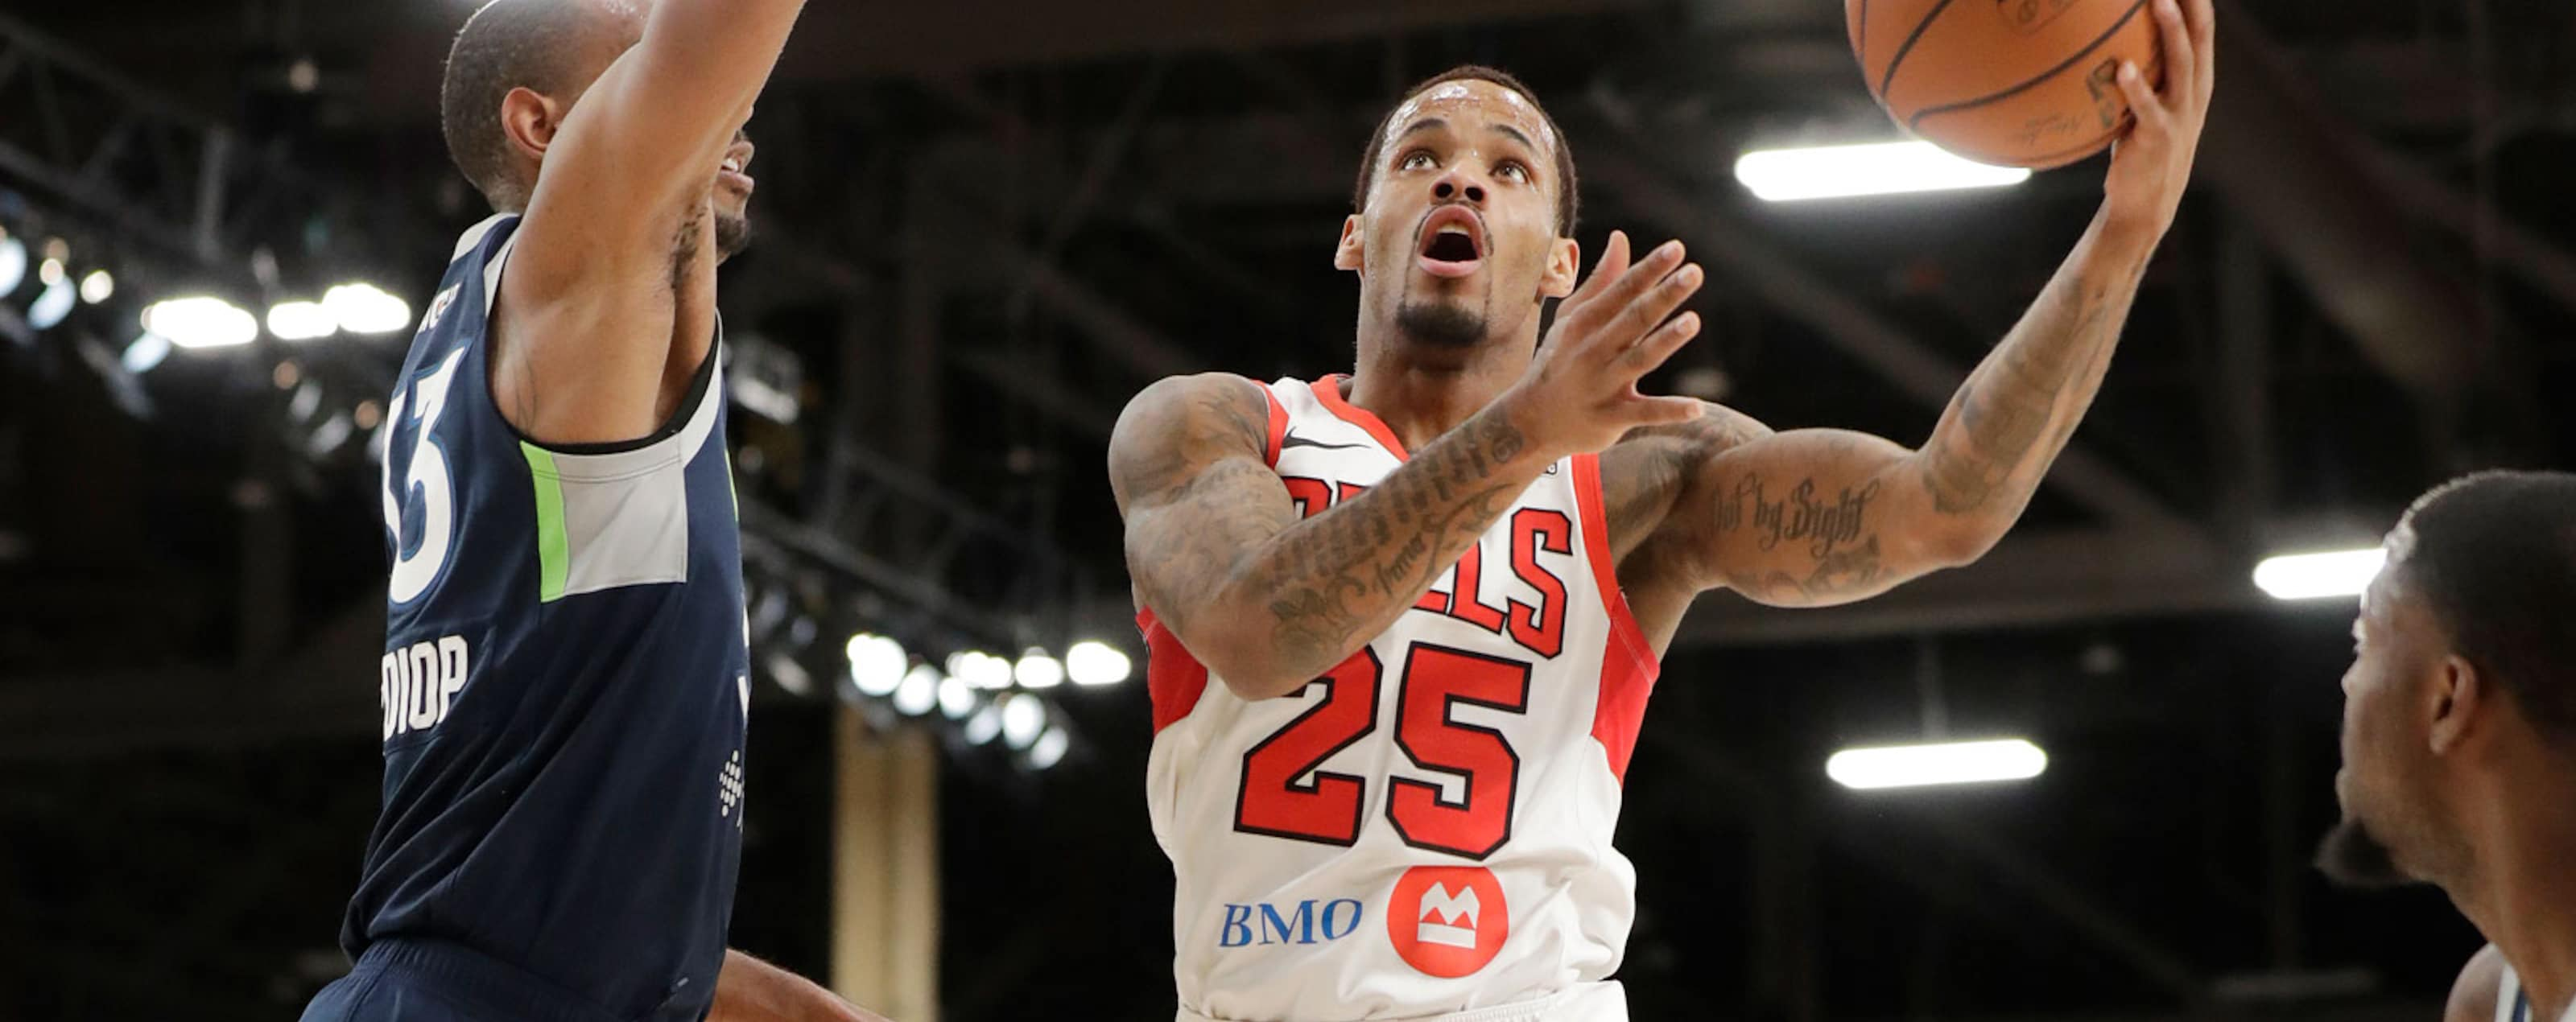 Walter Lemon Jr., #25 of The Windy City Bulls shoots the ball against the Iowa Wolves during the NBA G League Winter Showcase at Mandalay Bay Events Center in Las Vegas, Nevada on December 21, 2018.